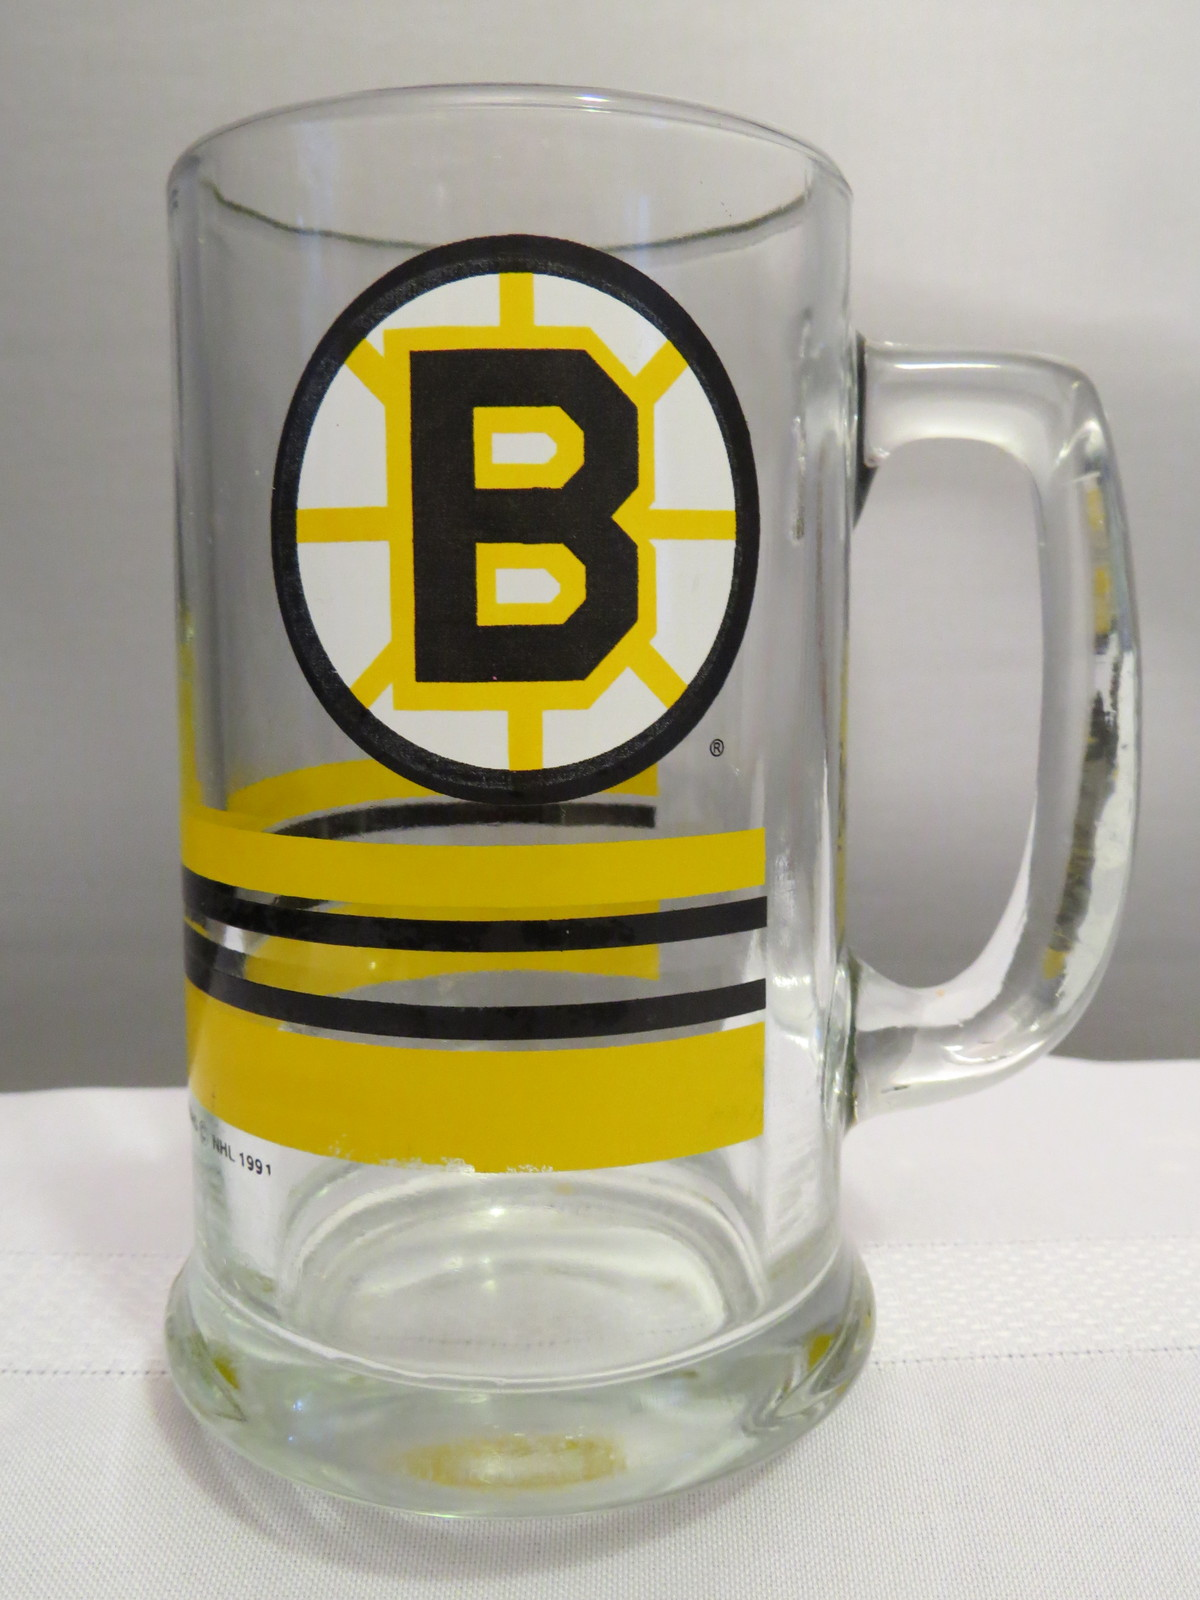 Retro Boston Bruins Beer Mug - Officially Licensed Product  - $49.00